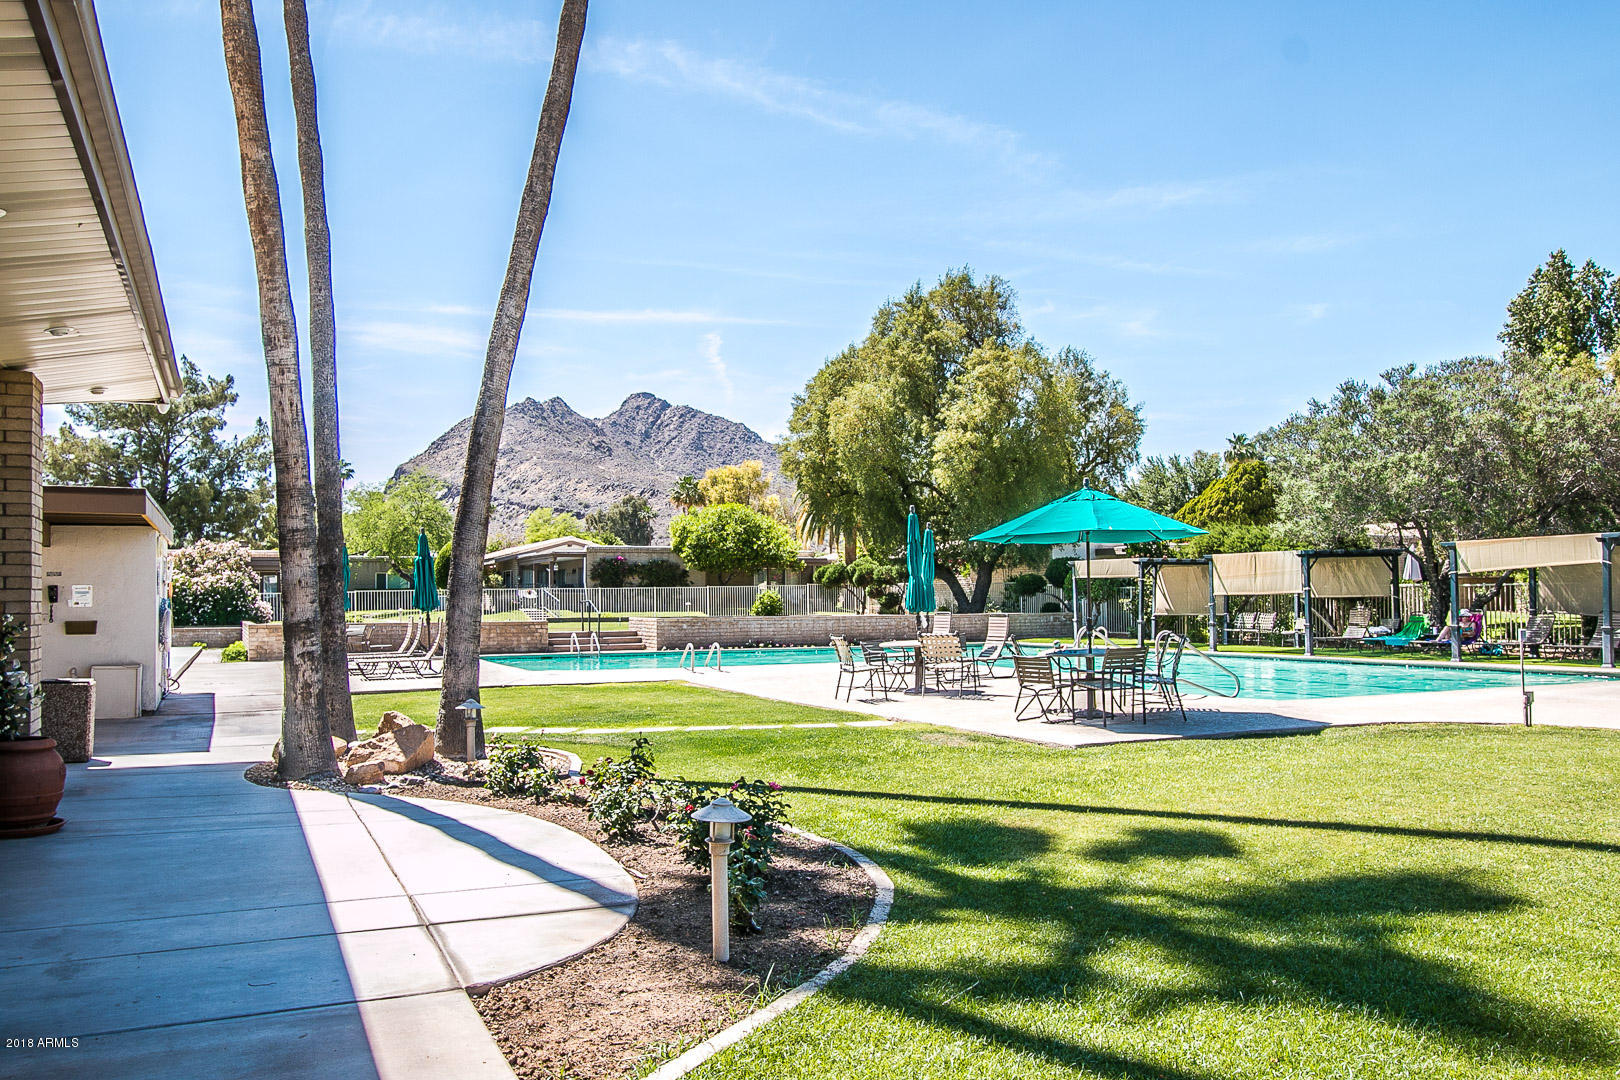 MLS 5764475 4800 N 68TH Street Unit 122, Scottsdale, AZ Scottsdale AZ Condo or Townhome